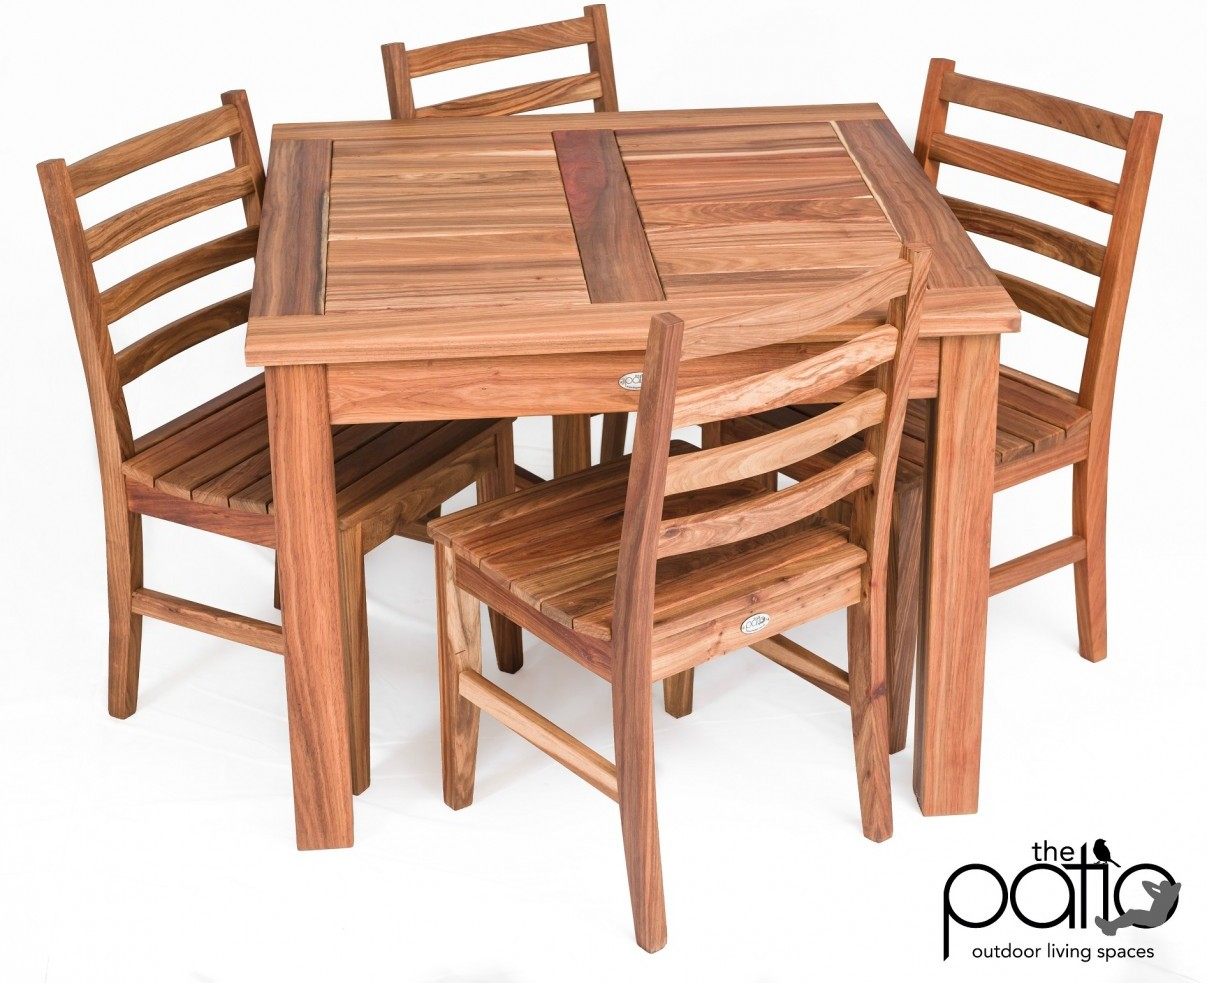 Kiaat Wooden furniture